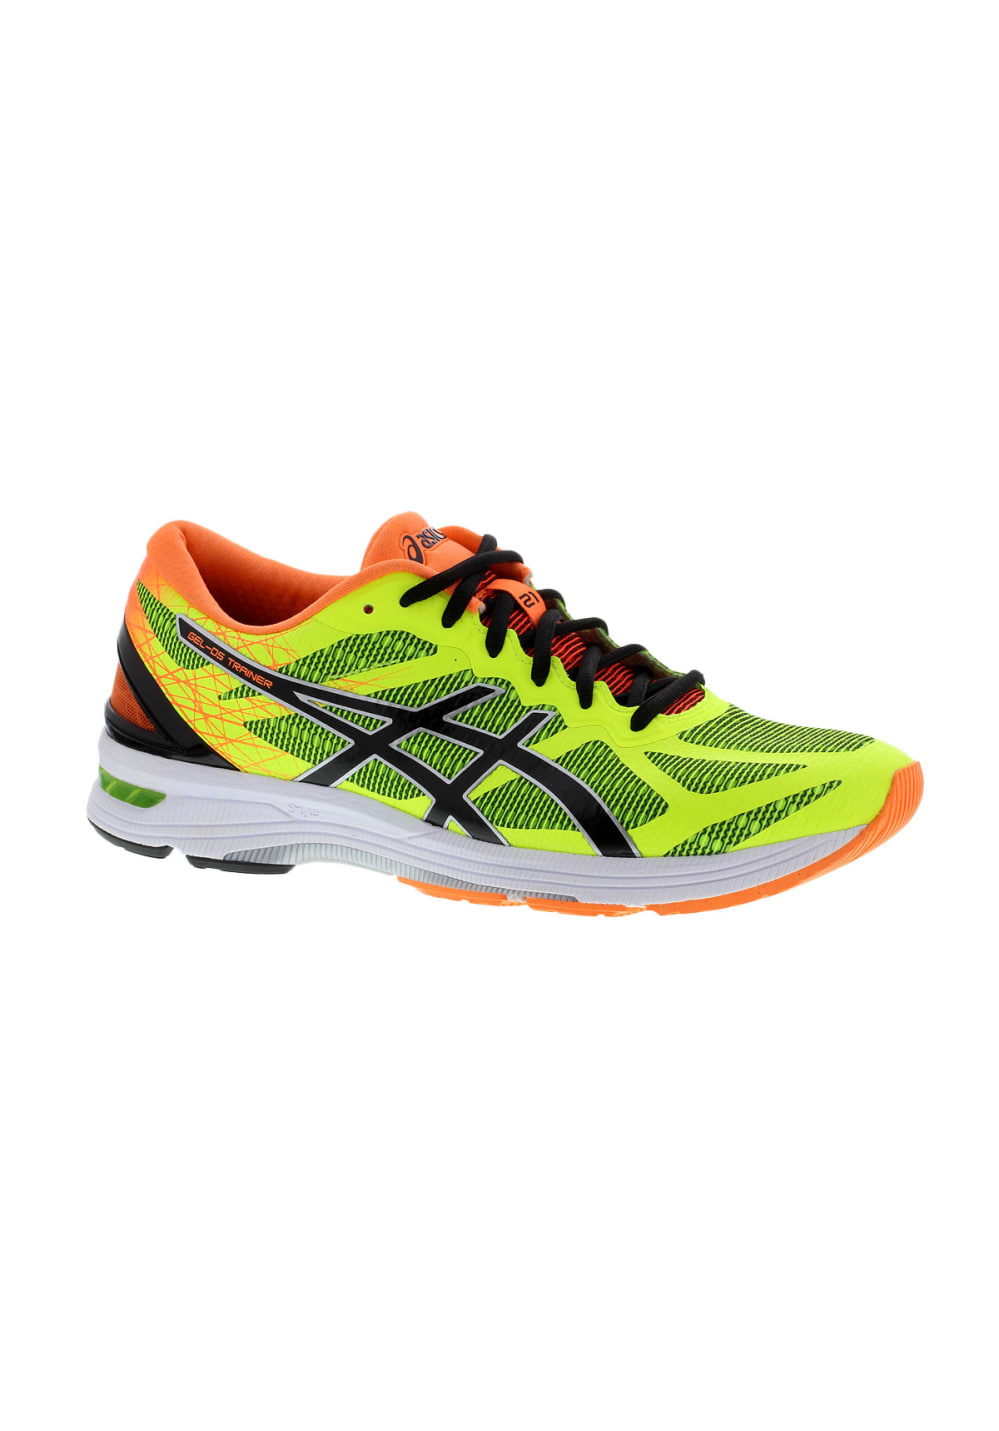 pretty nice 2c485 99dd5 ASICS GEL-DS Trainer 21 - Running shoes for Men - Green